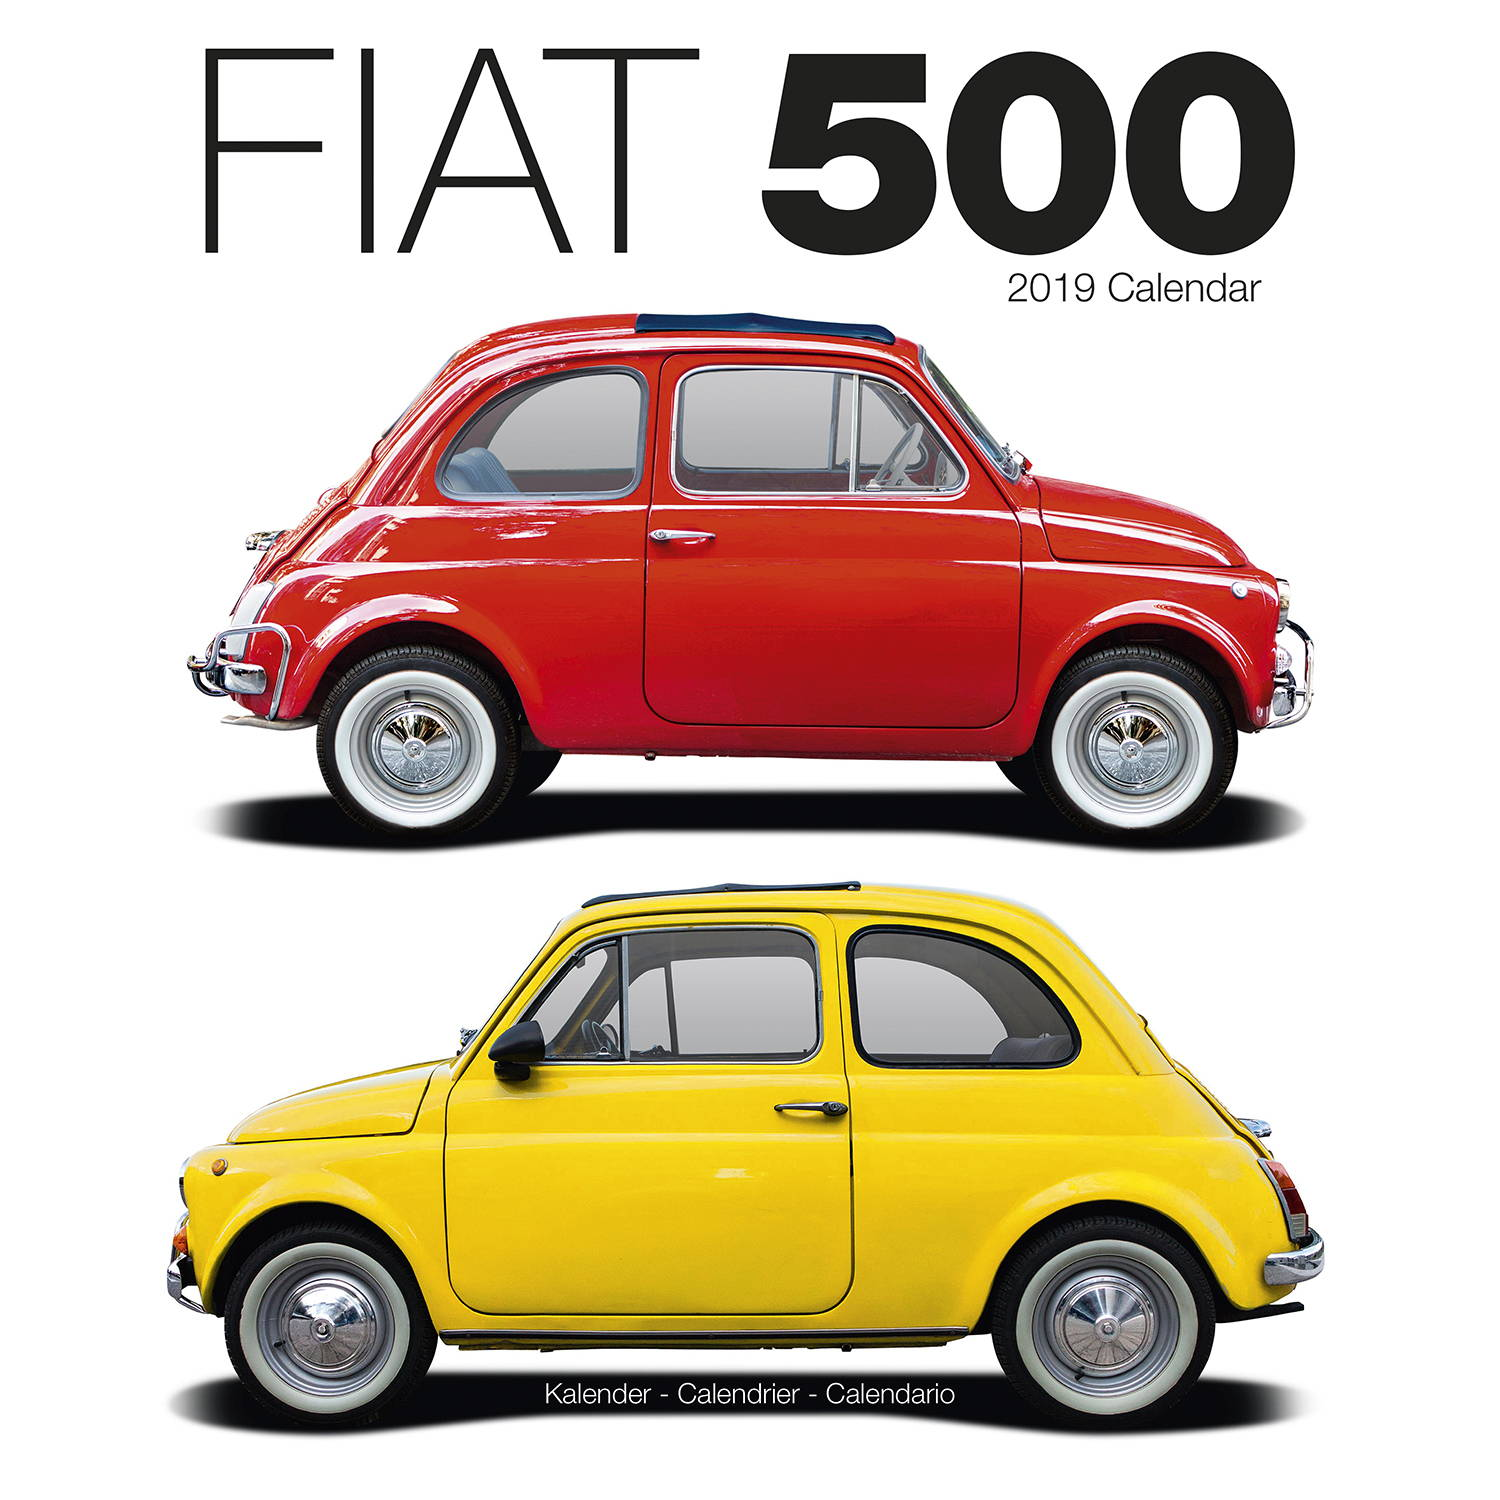 Fiat 500 Calendar, Vehicle Calendars